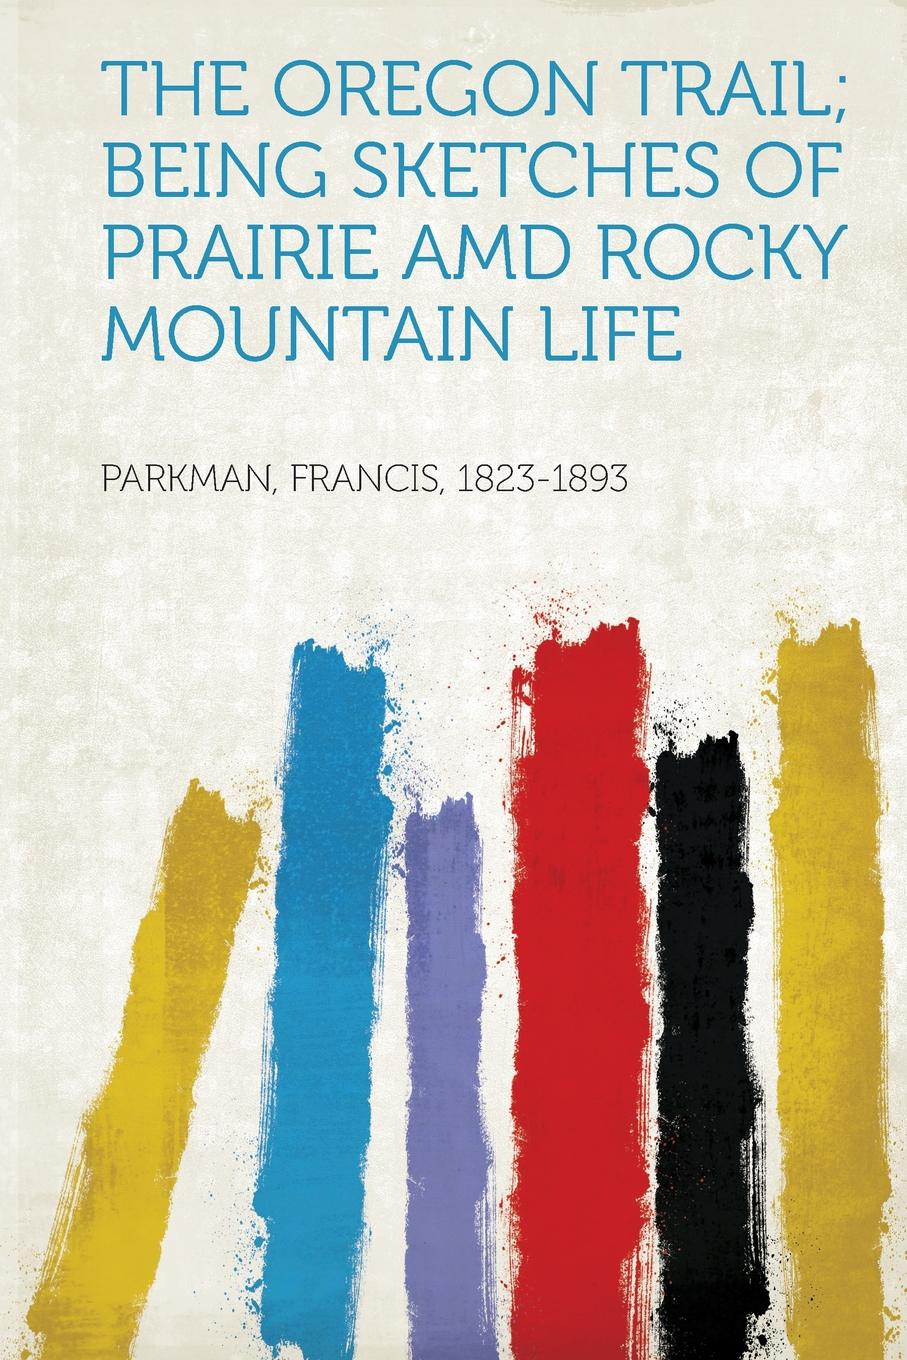 Parkman Francis 1823-1893 The Oregon Trail; Being Sketches of Prairie Amd Rocky Mountain Life francis parkman the oregon trail sketches of prairie and rocky mountain life